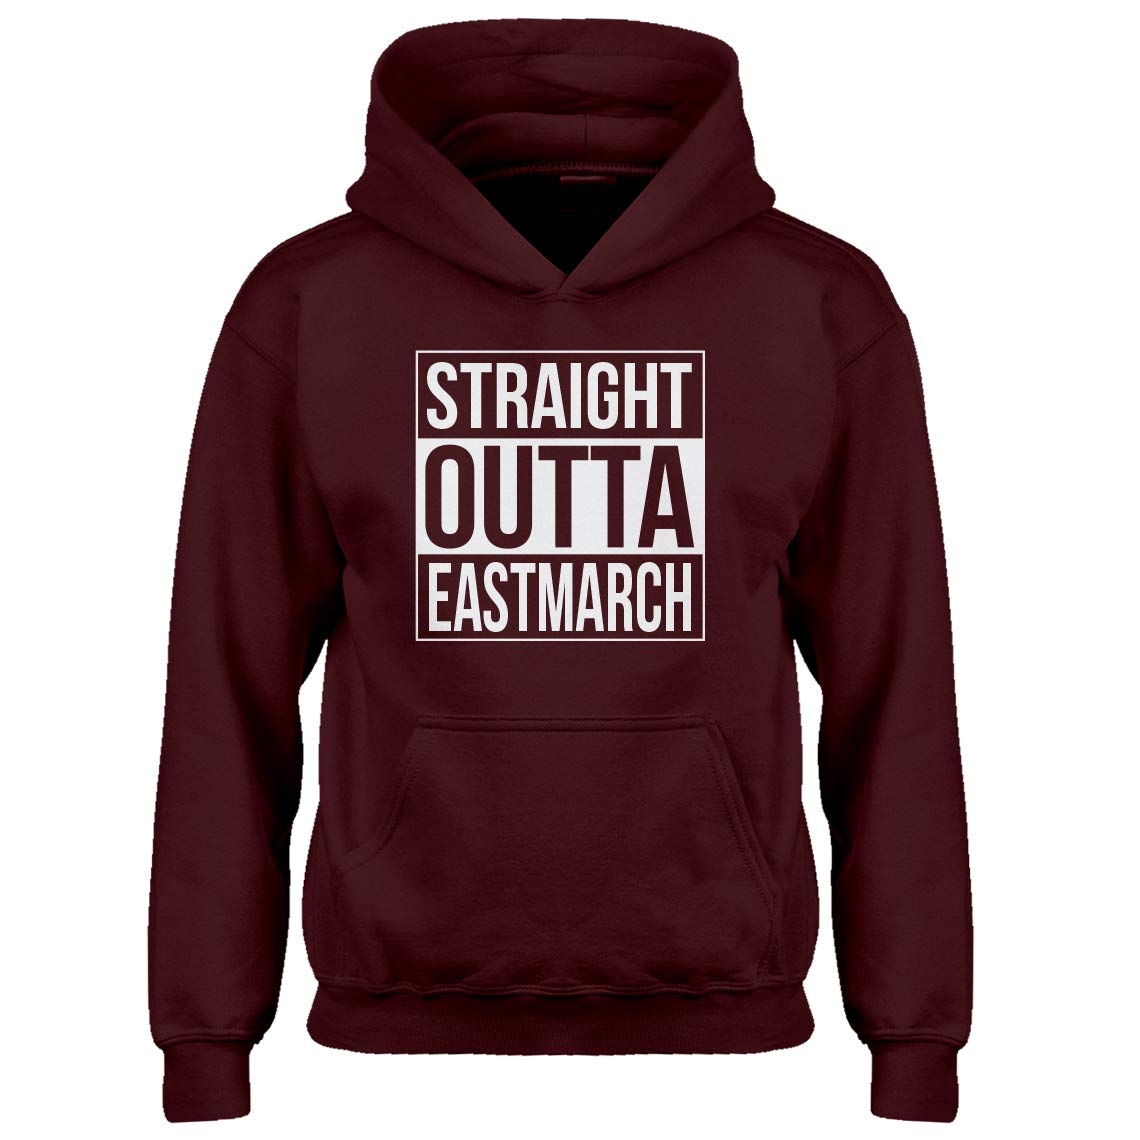 Indica Plateau Youth Straight Outta Eastmarch Kids Hoodie